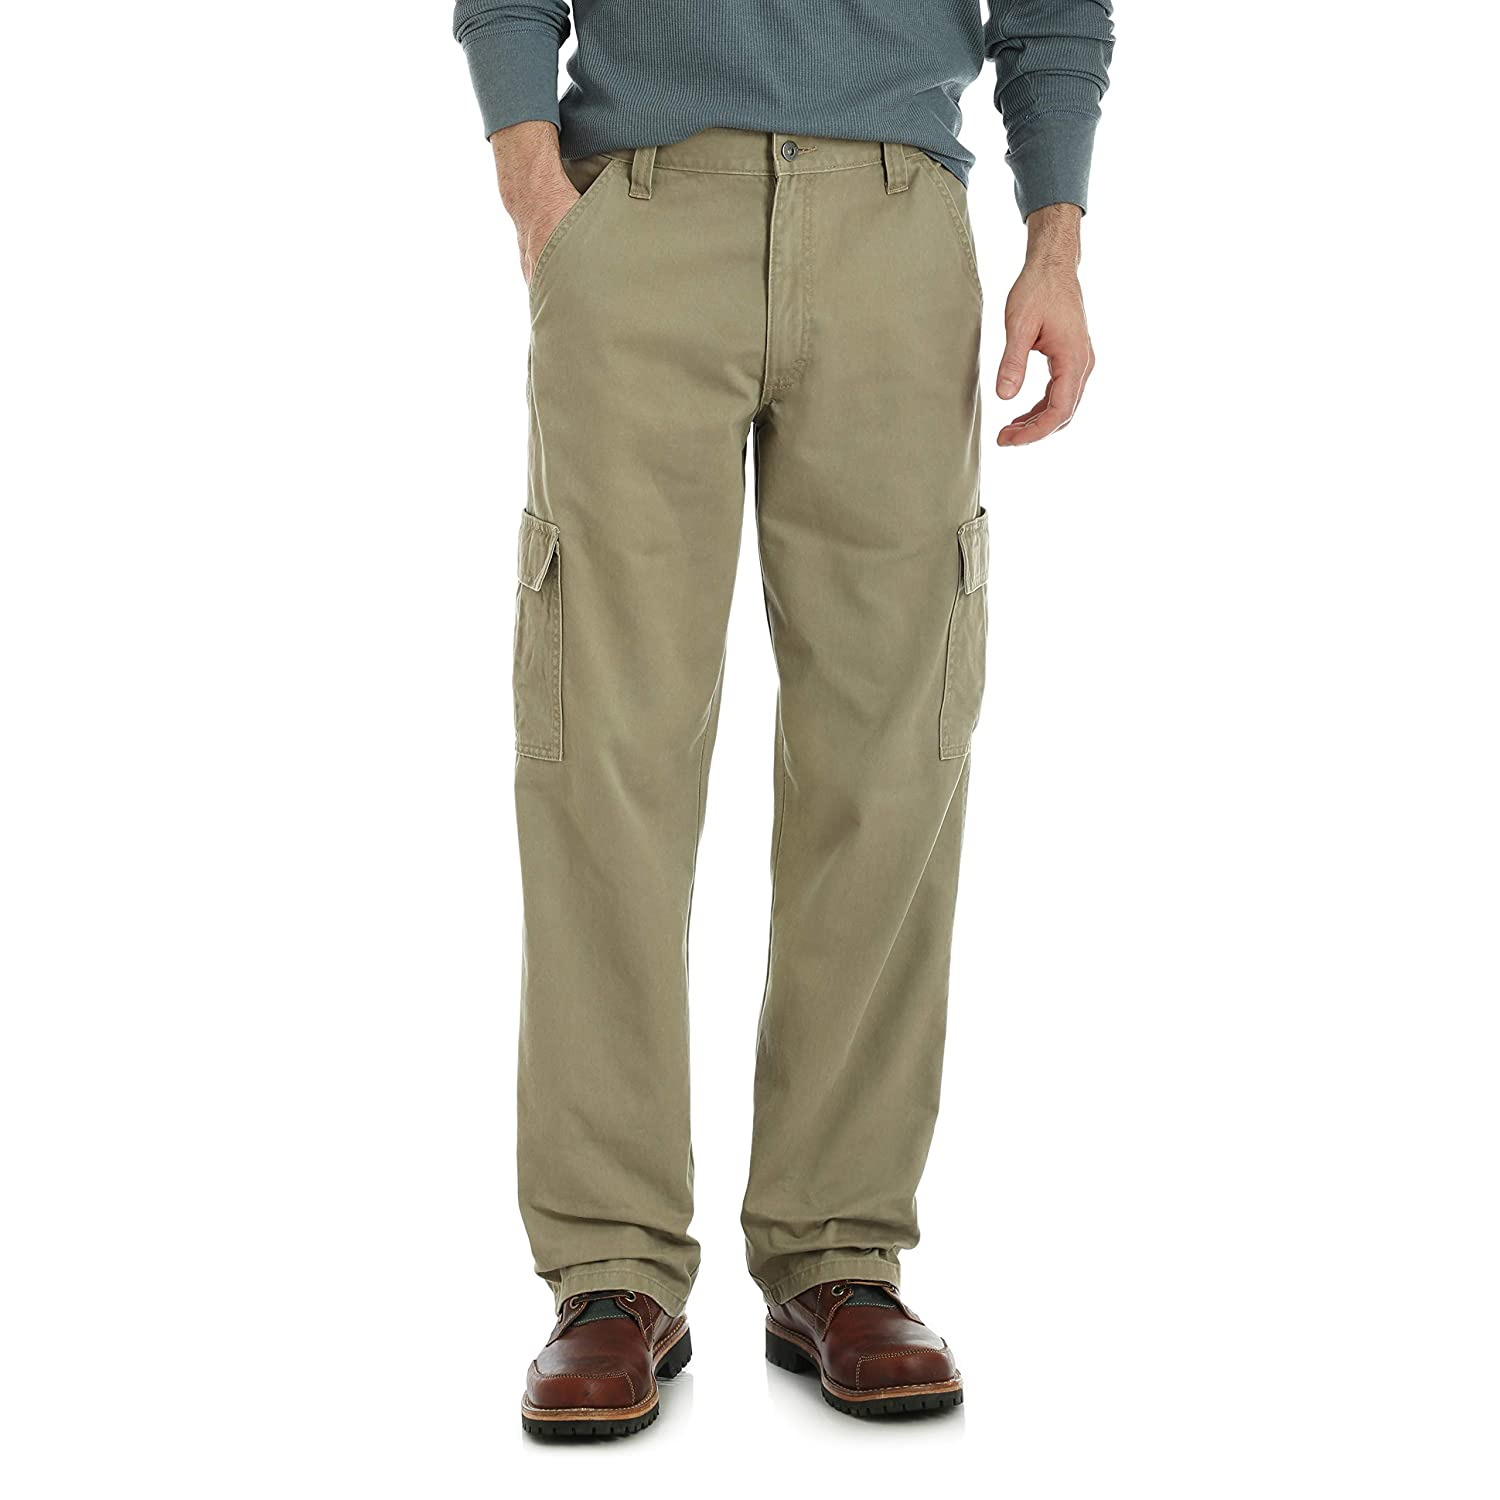 60b103ec Wrangler Authentics Men's Classic Twill Relaxed Fit Cargo Pant: Amazon.in:  Clothing & Accessories